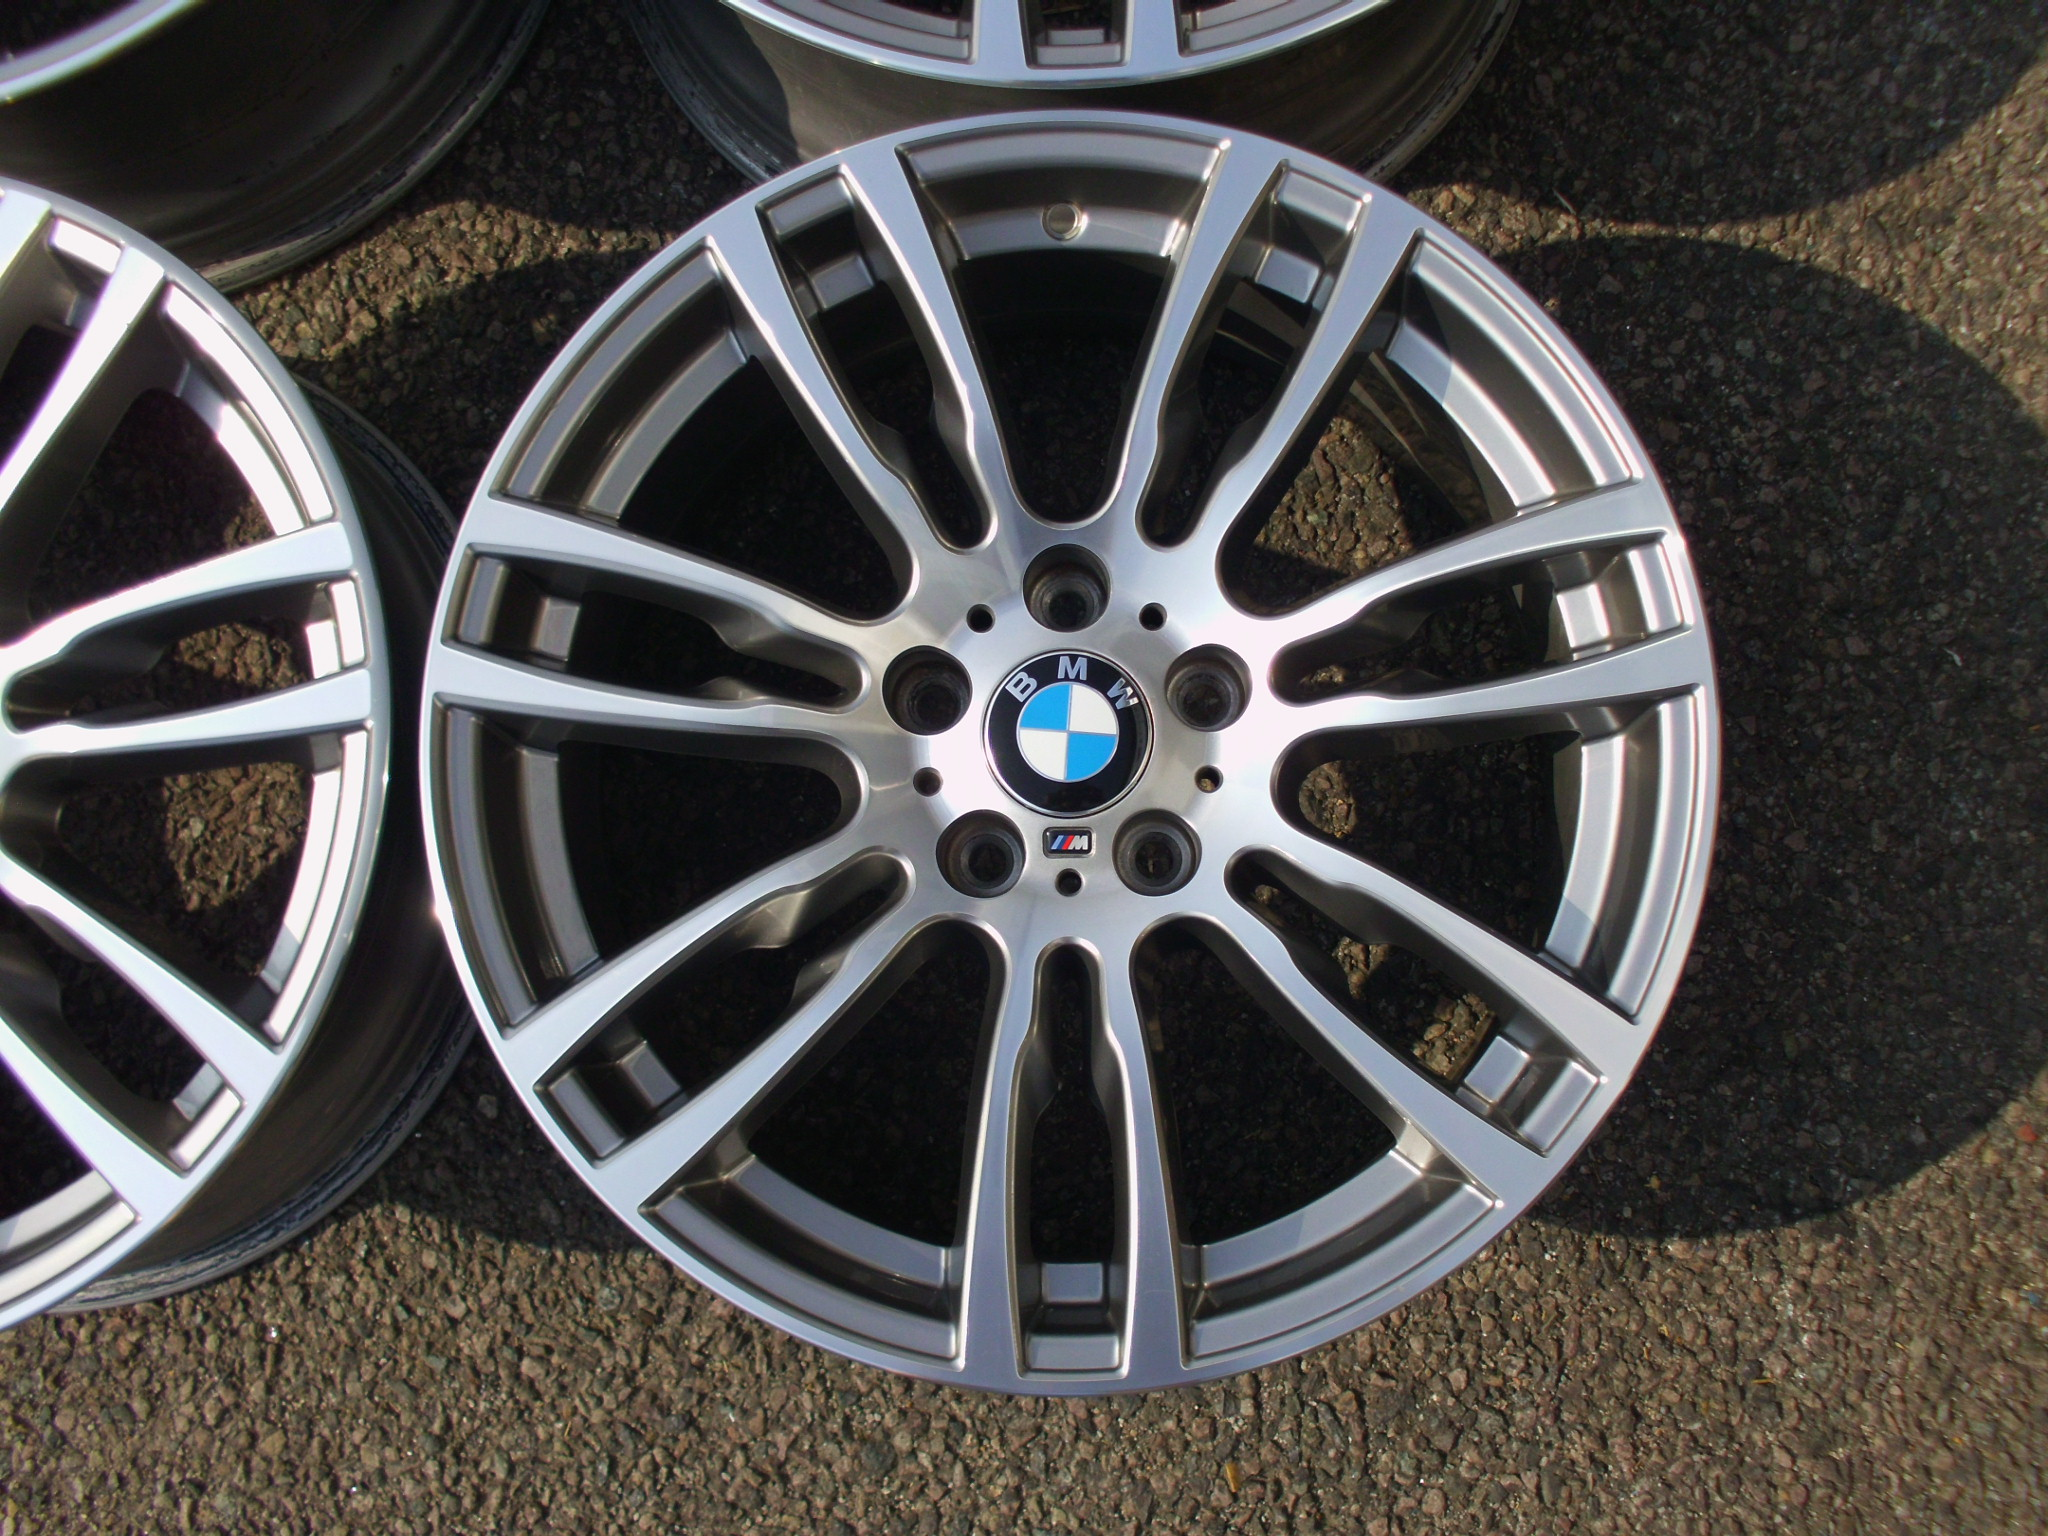 "USED 19"" GENUINE BMW STYLE 403 DOUBLE SPOKE F30 M SPORT ALLOY WHEELS, EXCELLENT CONDITION,WIDE REAR"